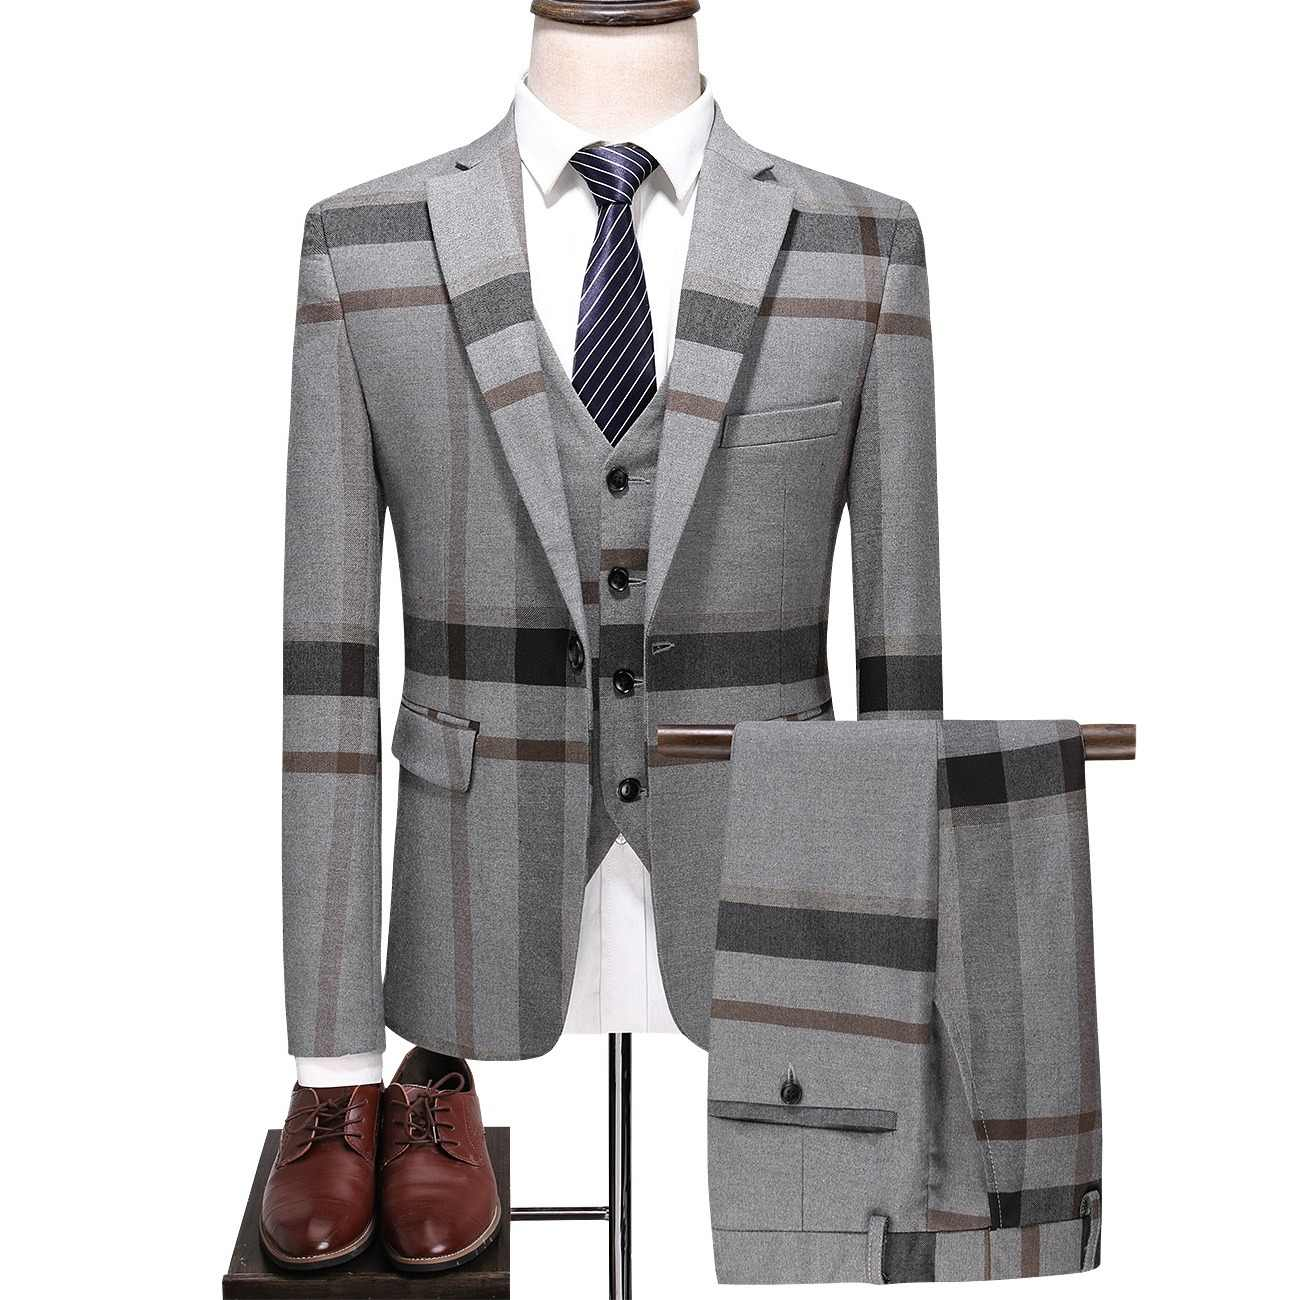 e40a8e0e147 JZ CHIEF 3 piece Suits Mens Wedding Suits Single Breasted Plaid Casual  Business Fashion High Quality